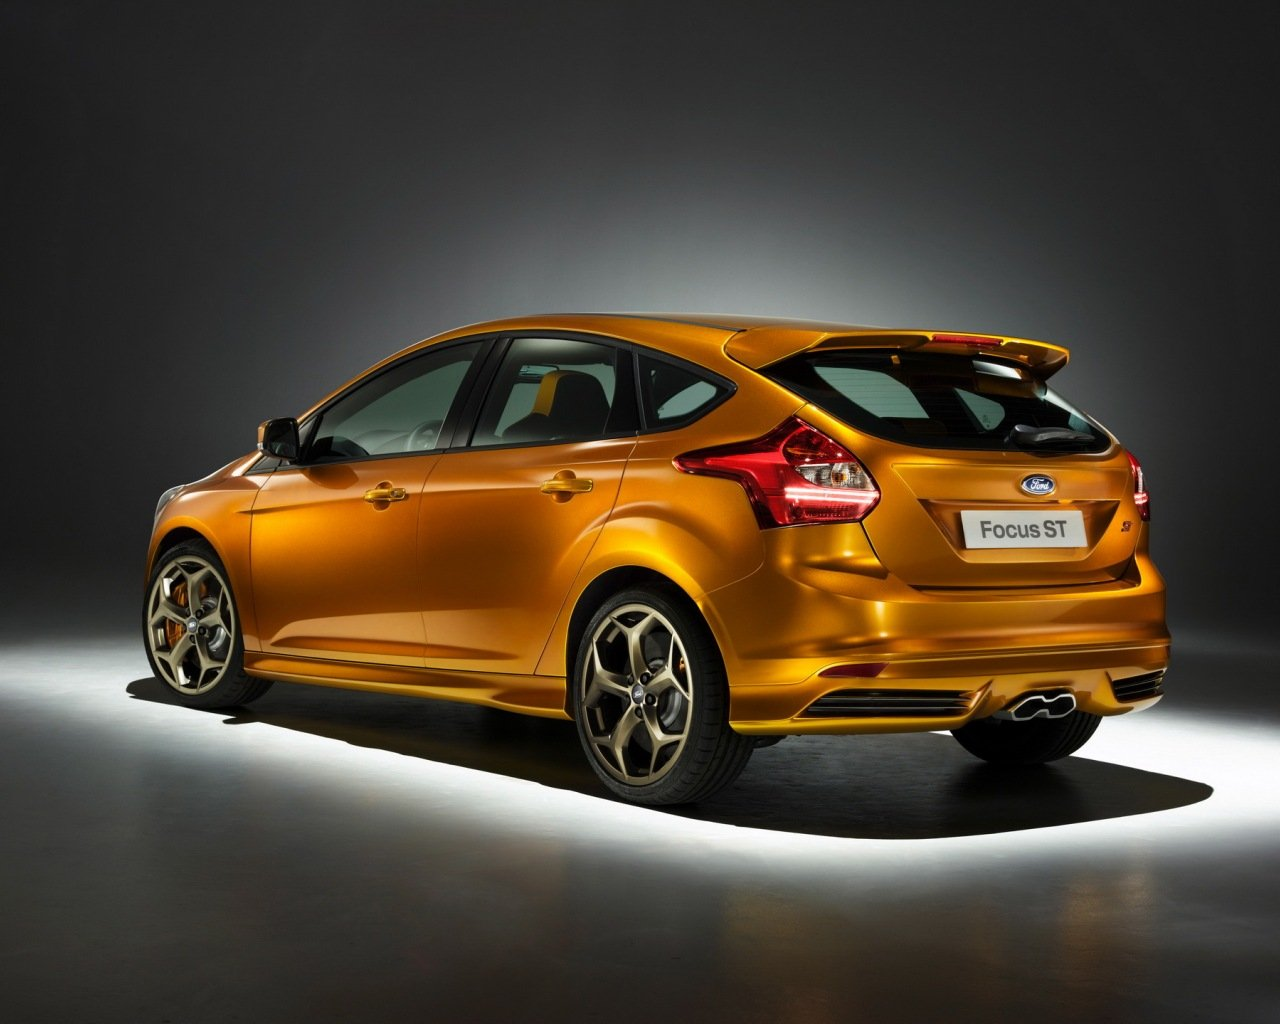 Ford Focus ST photos and wallpapers   tuningnewsnet 1280x1024